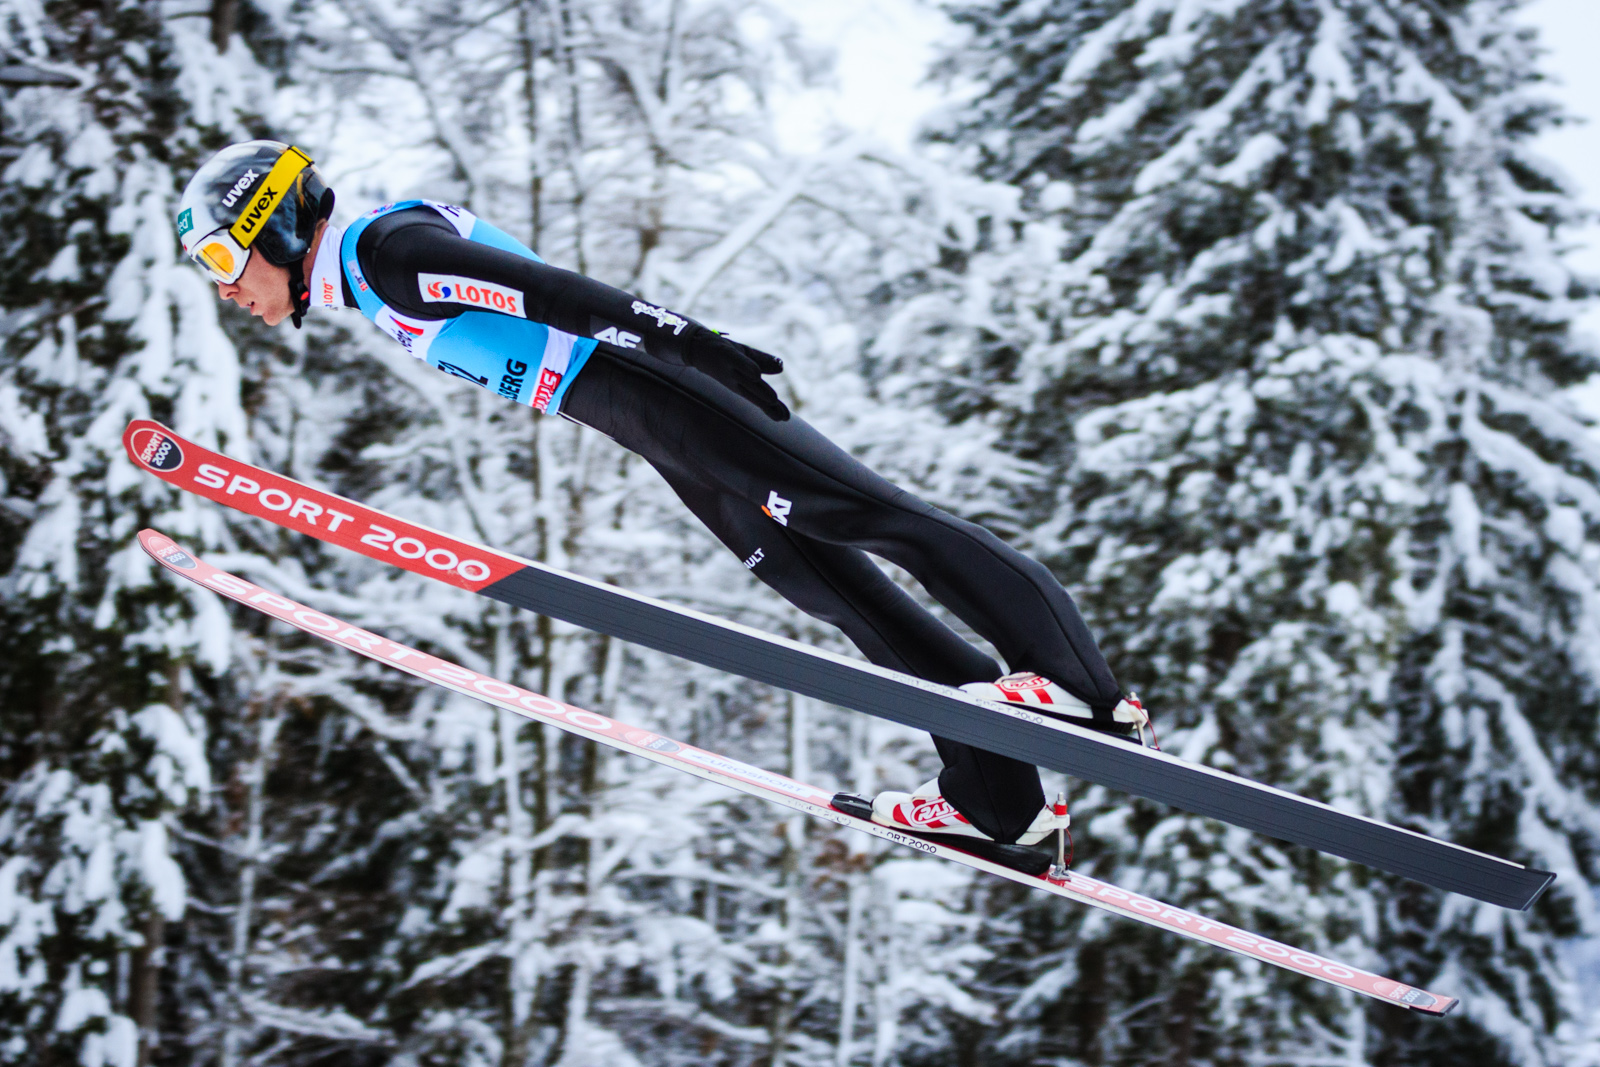 Fis Ski Jumping World Cup 2017/18